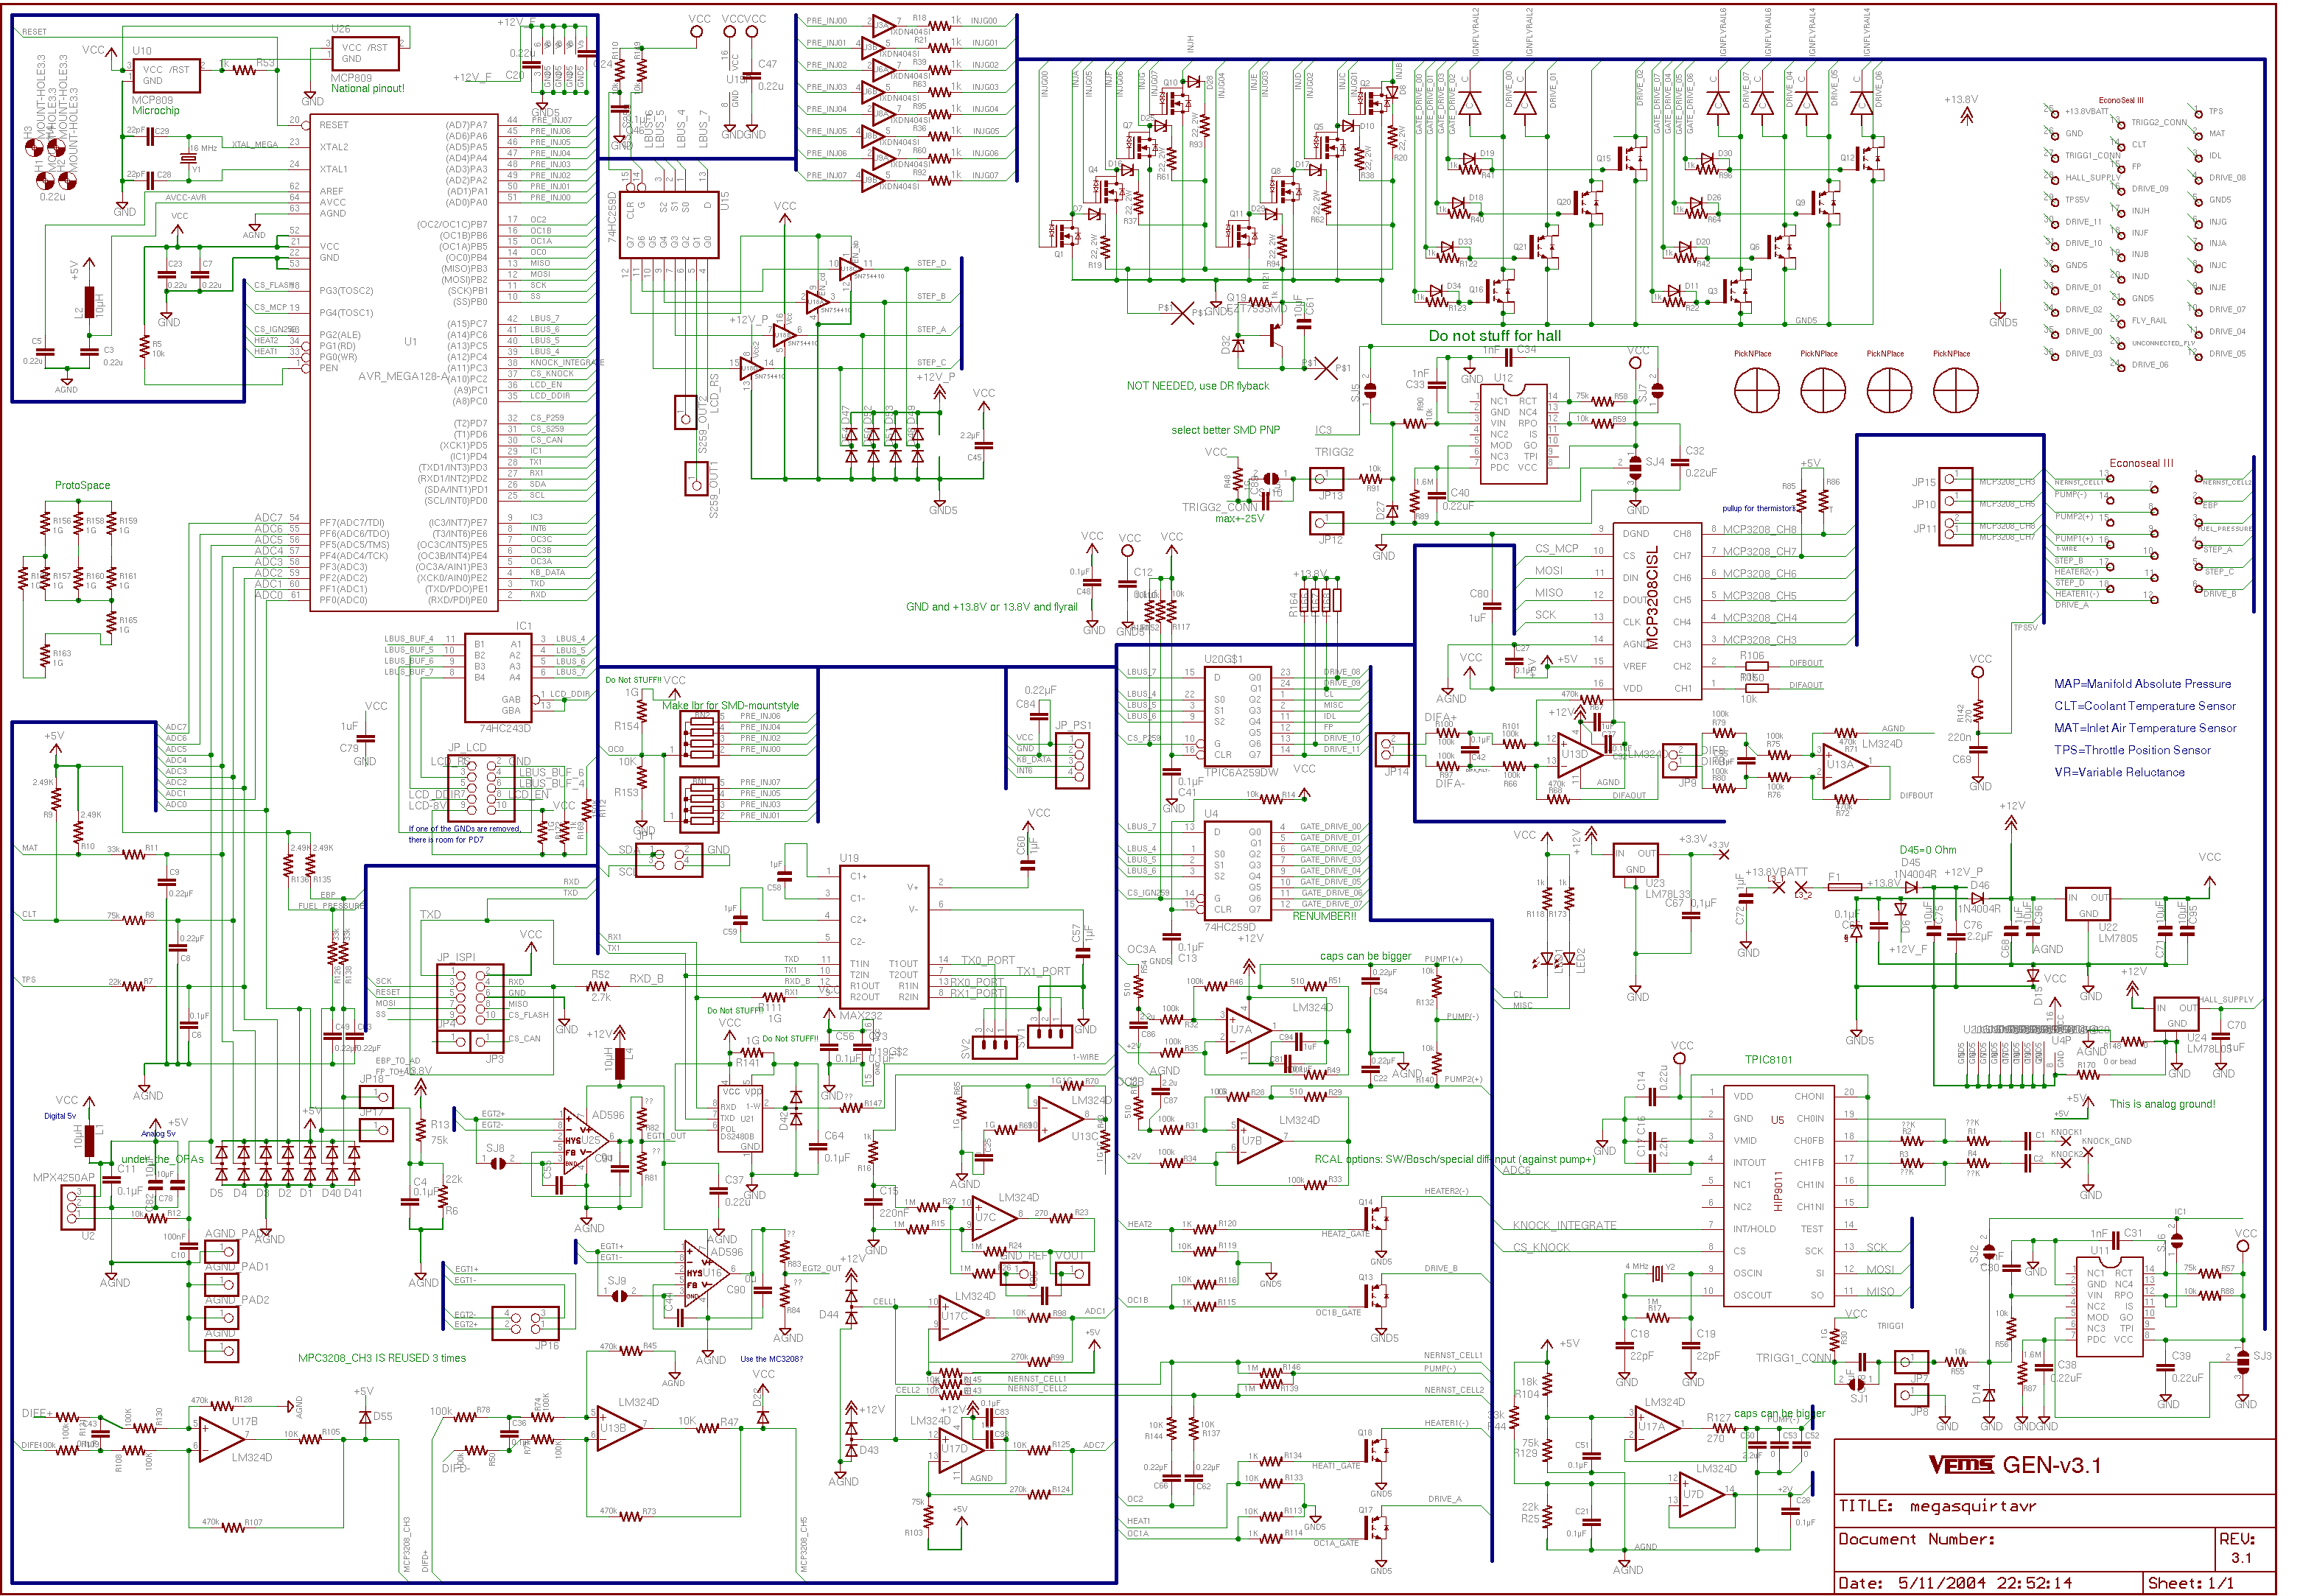 Gen Board/Ver Three/Schematic - VEMS wiki www.vems.hu on circuit diagram, straight-line diagram, data flow diagram, ladder logic, control flow diagram, function block diagram, technical drawing, functional flow block diagram, tube map, piping and instrumentation diagram, electronic design automation, diagramming software, schematic capture, one-line diagram, cross section, block diagram,